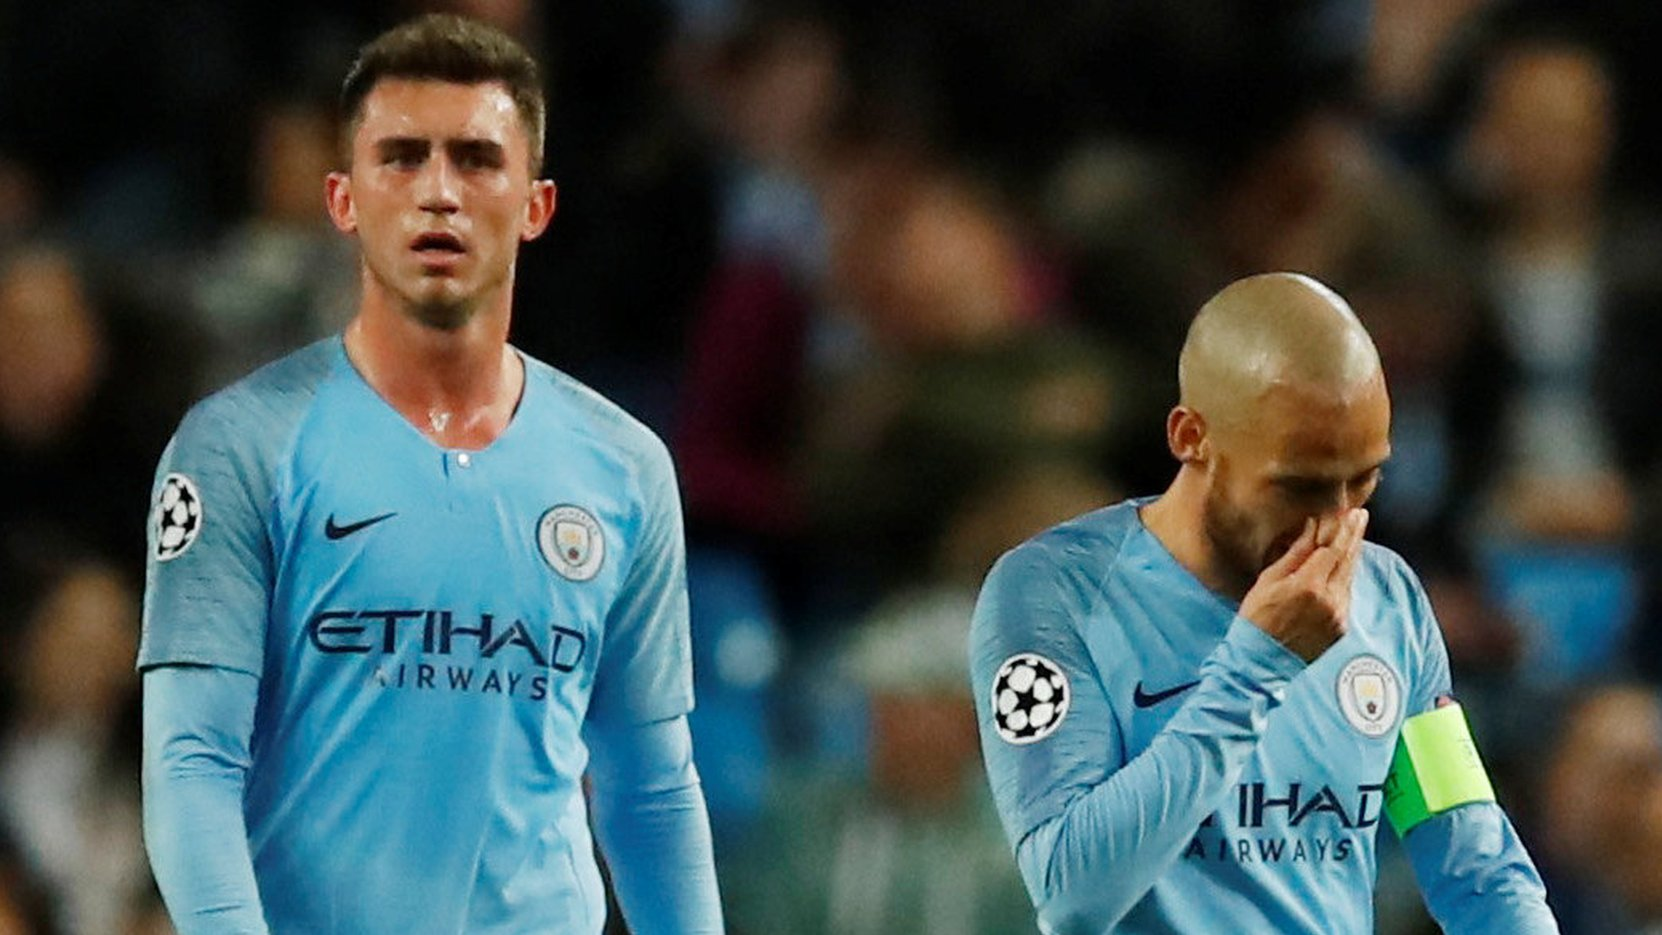 Man City suffer shock opening Champions League loss at home to Lyon